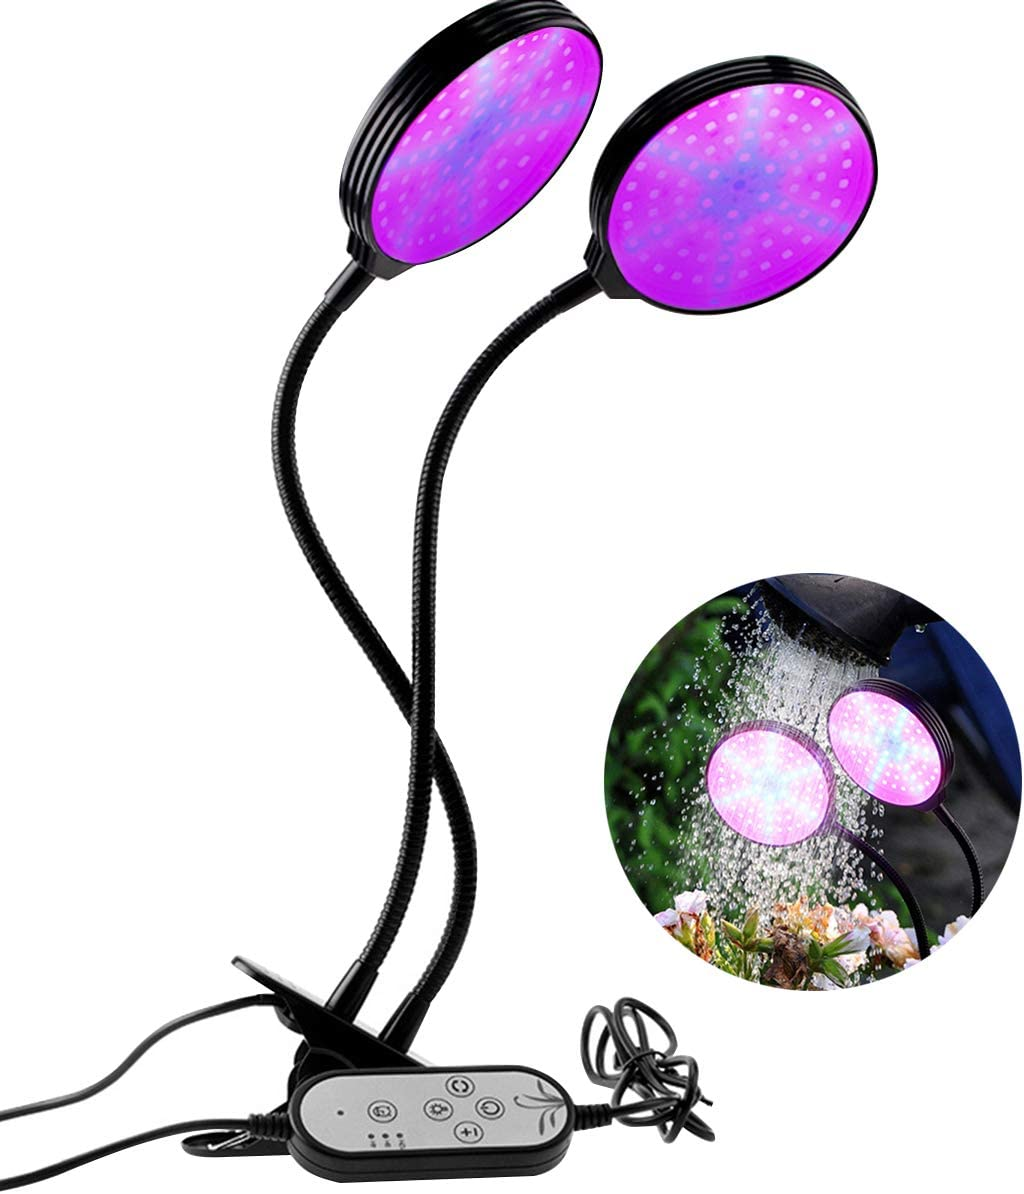 Alitade Grow Light 30W Waterproof Full Spectrum LED Grow Lights for Indoor Plants with Timer 4 8 12H, 5 Dimmable Levels, 3 Switch Modes, Adjustable Gooseneck Desk Clip On